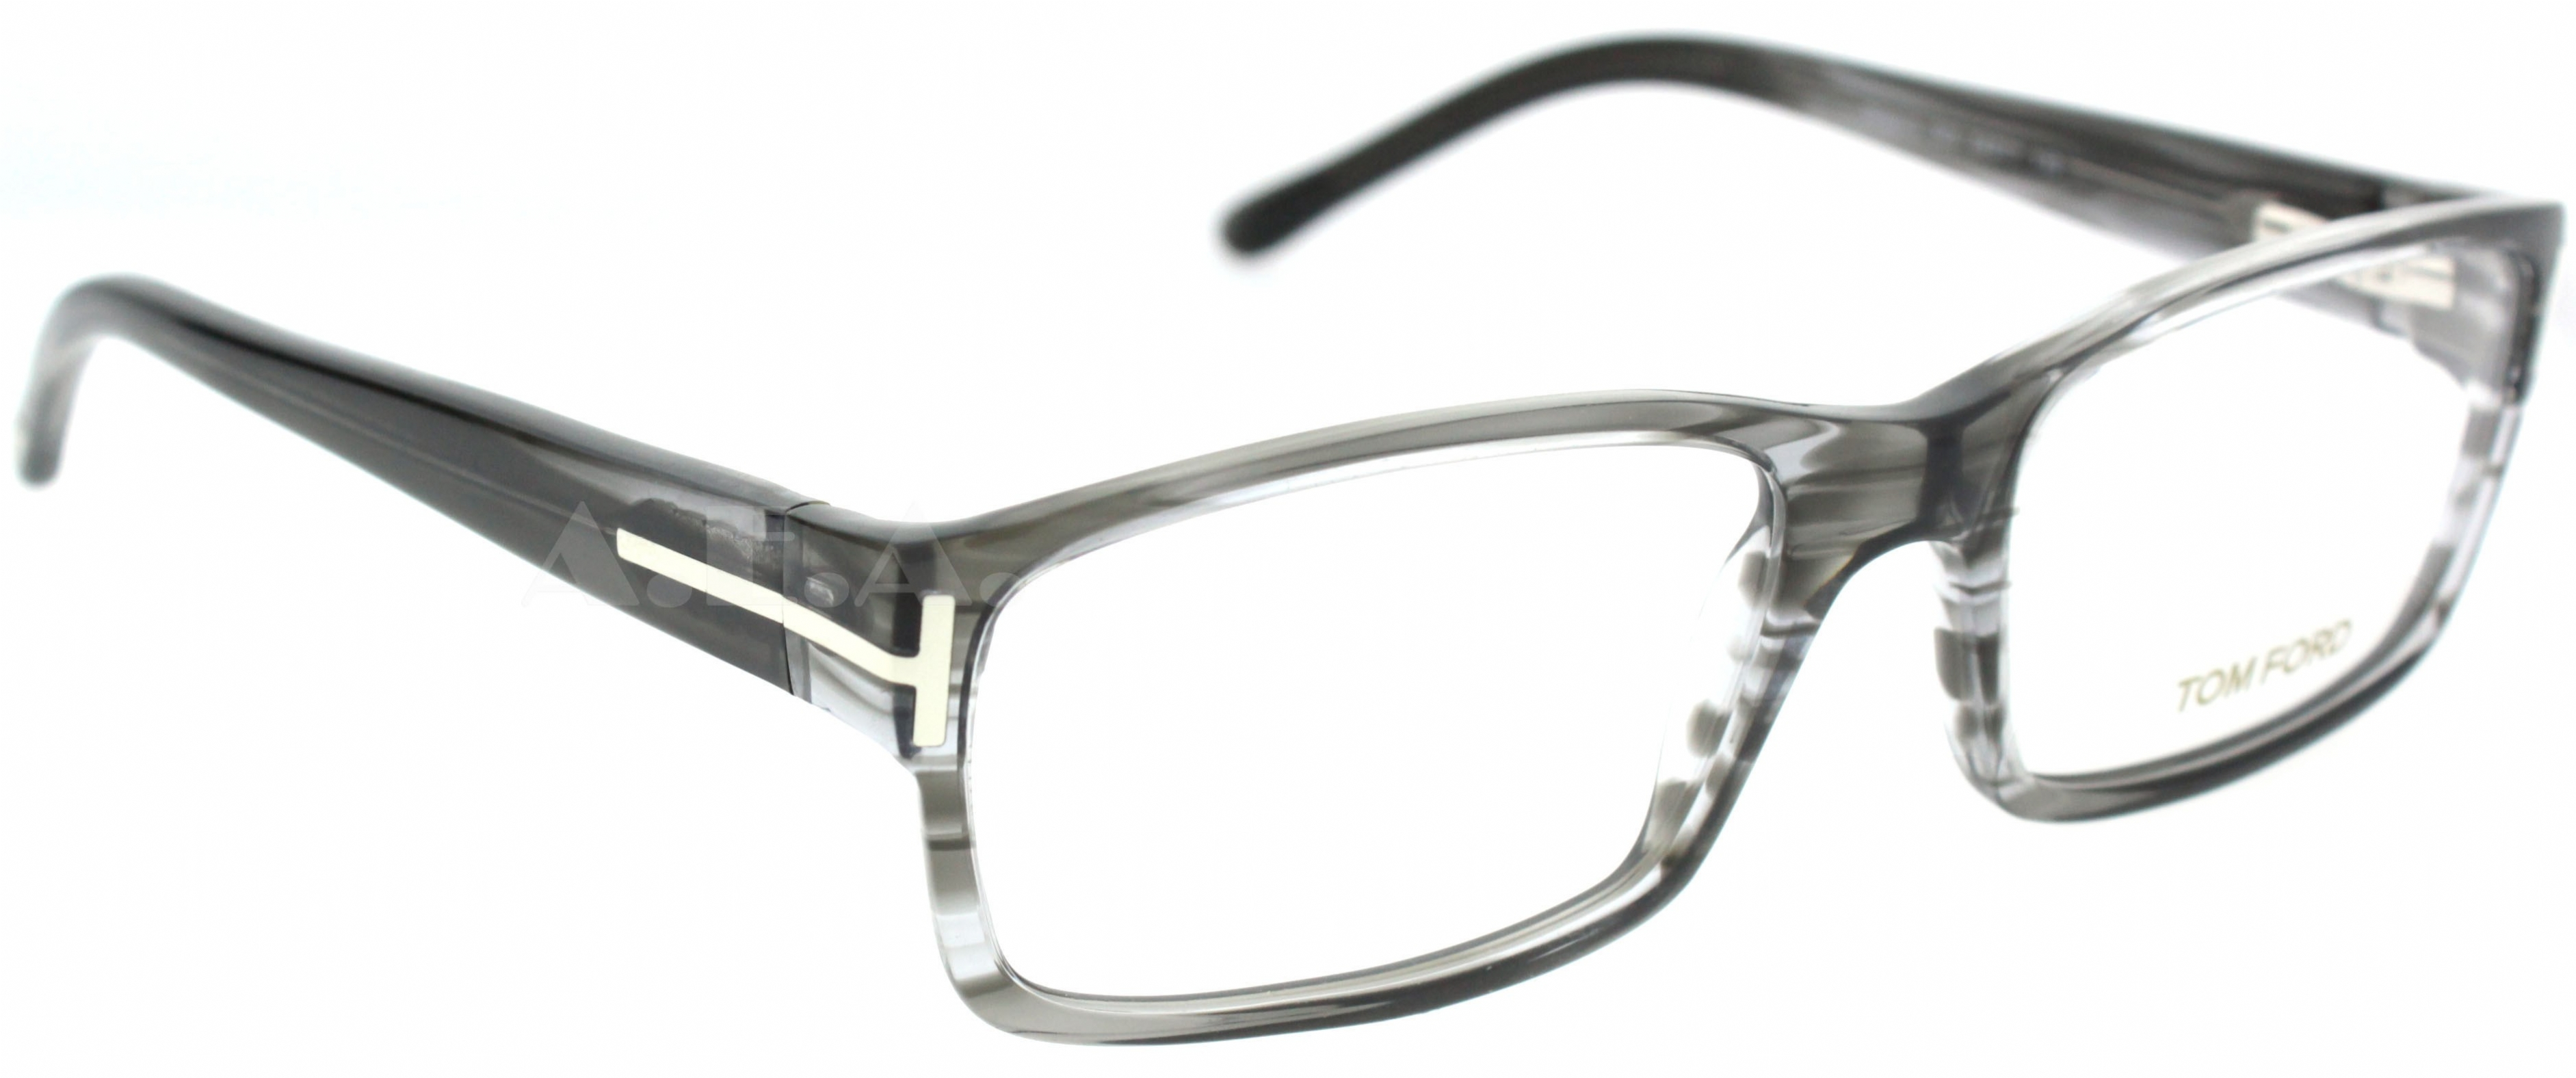 2c28c38d92 Tom Ford 5013 Eyeglasses